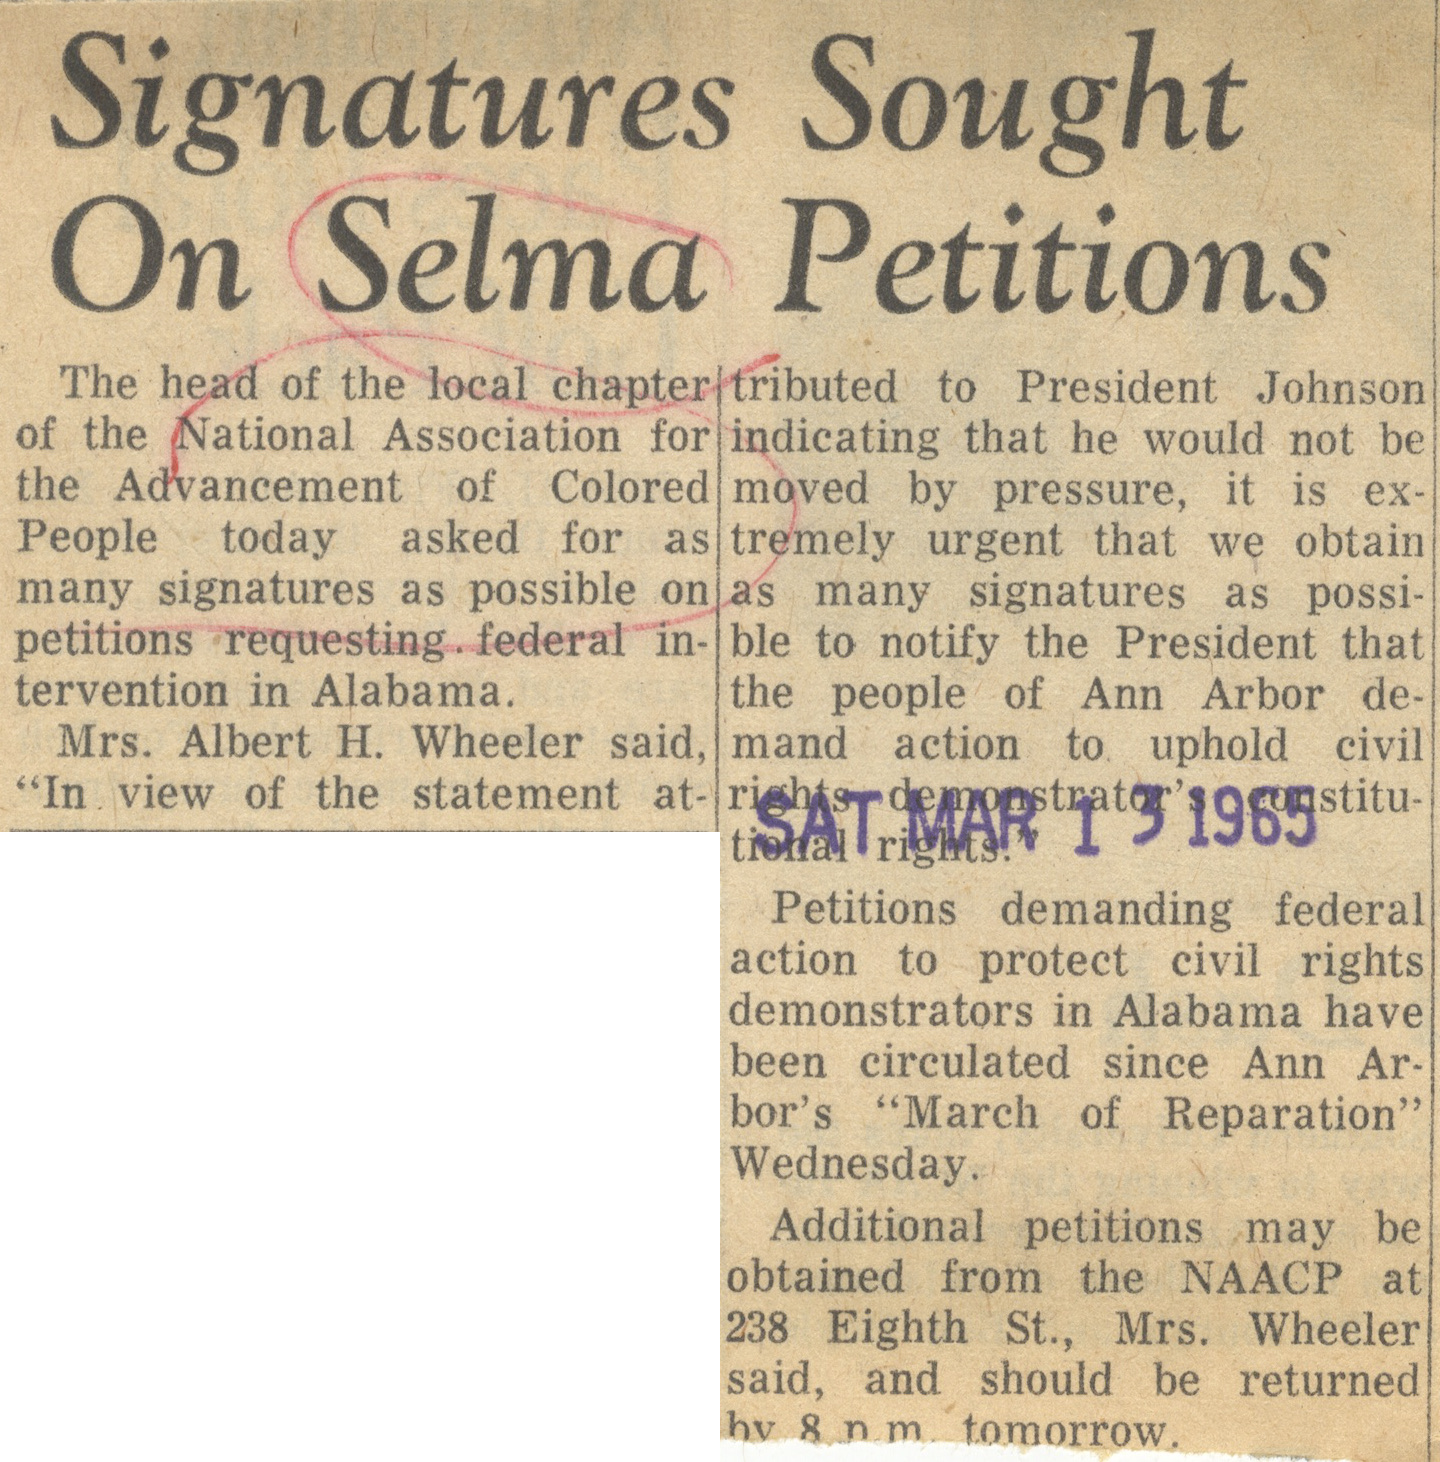 Signatures Sought On Selma Petitions image